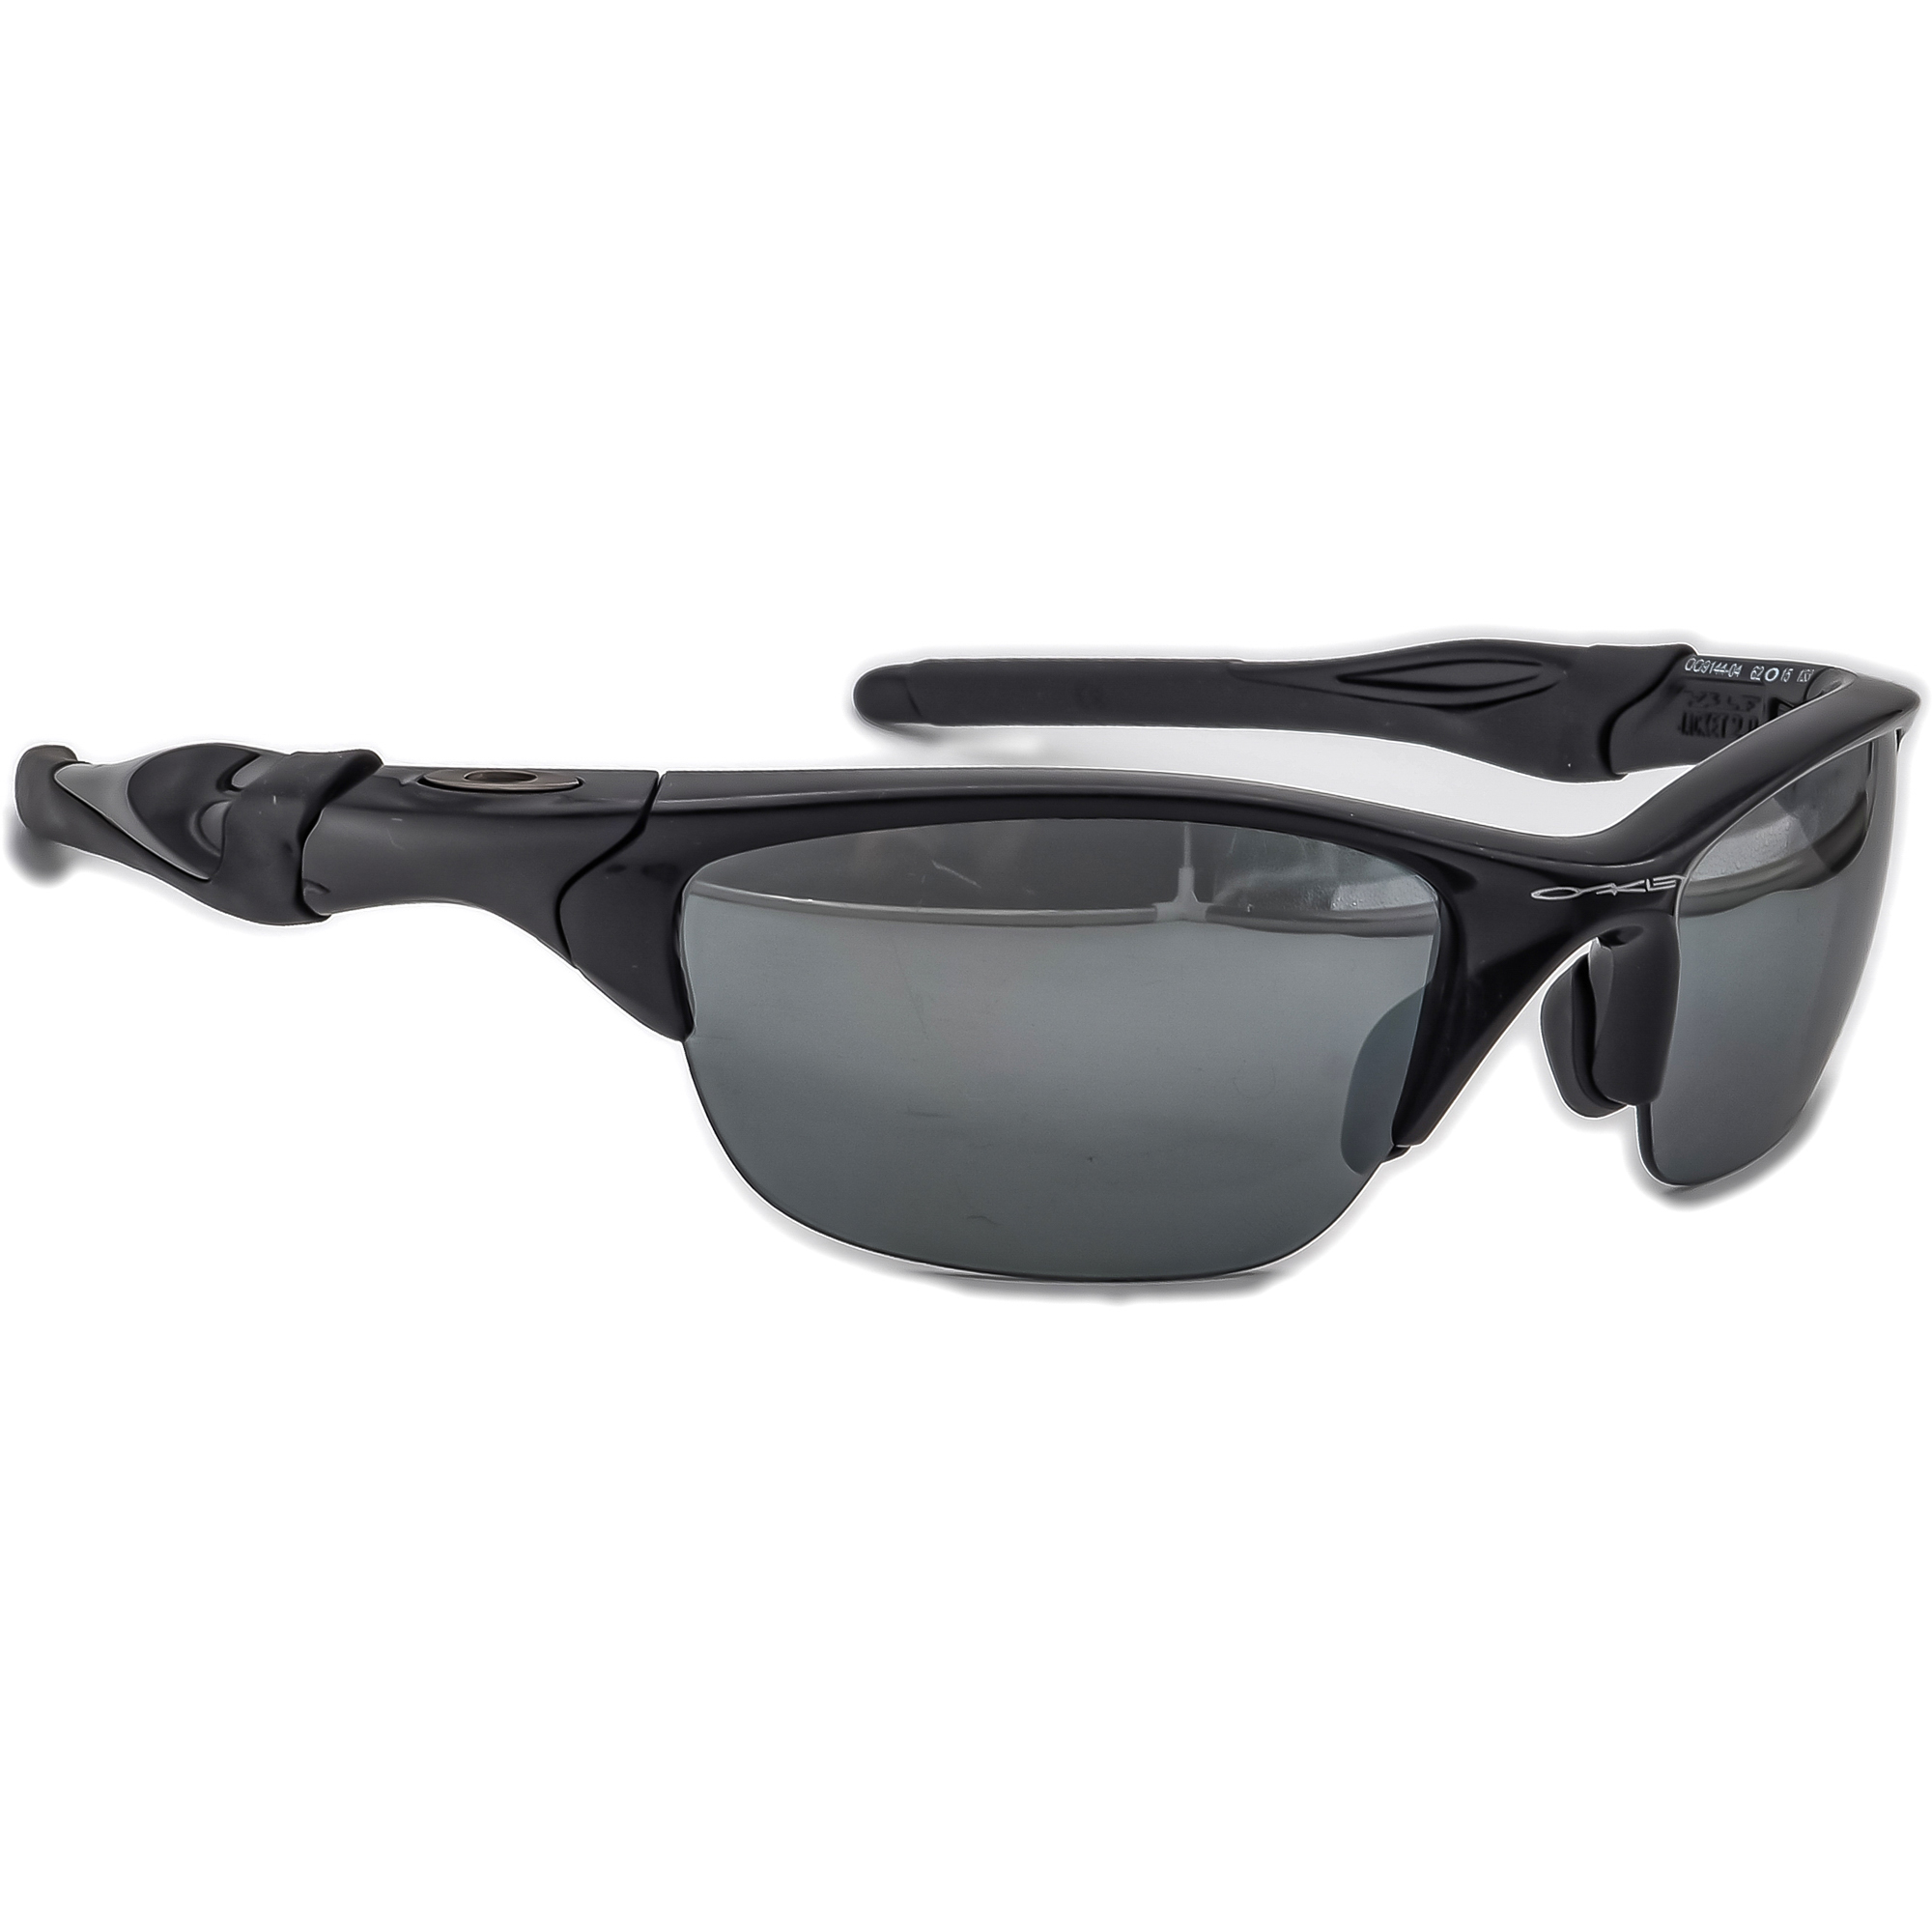 Oakley OO9144-04 Half Jacket 2.0  Sunglasses Frame Only